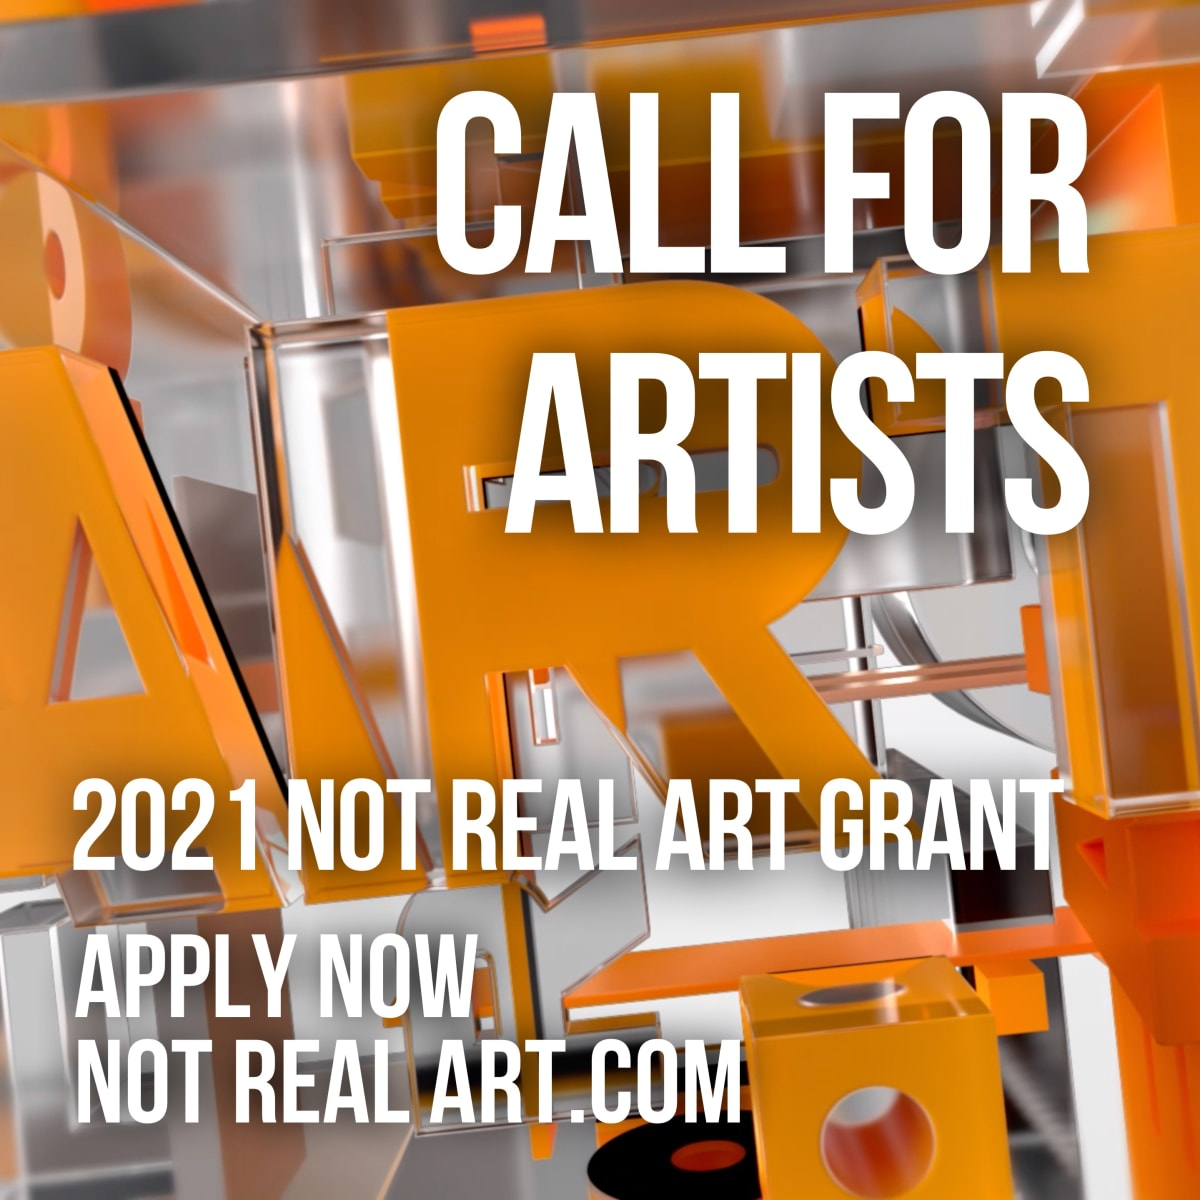 2021 NOT REAL ART Grant for Artists